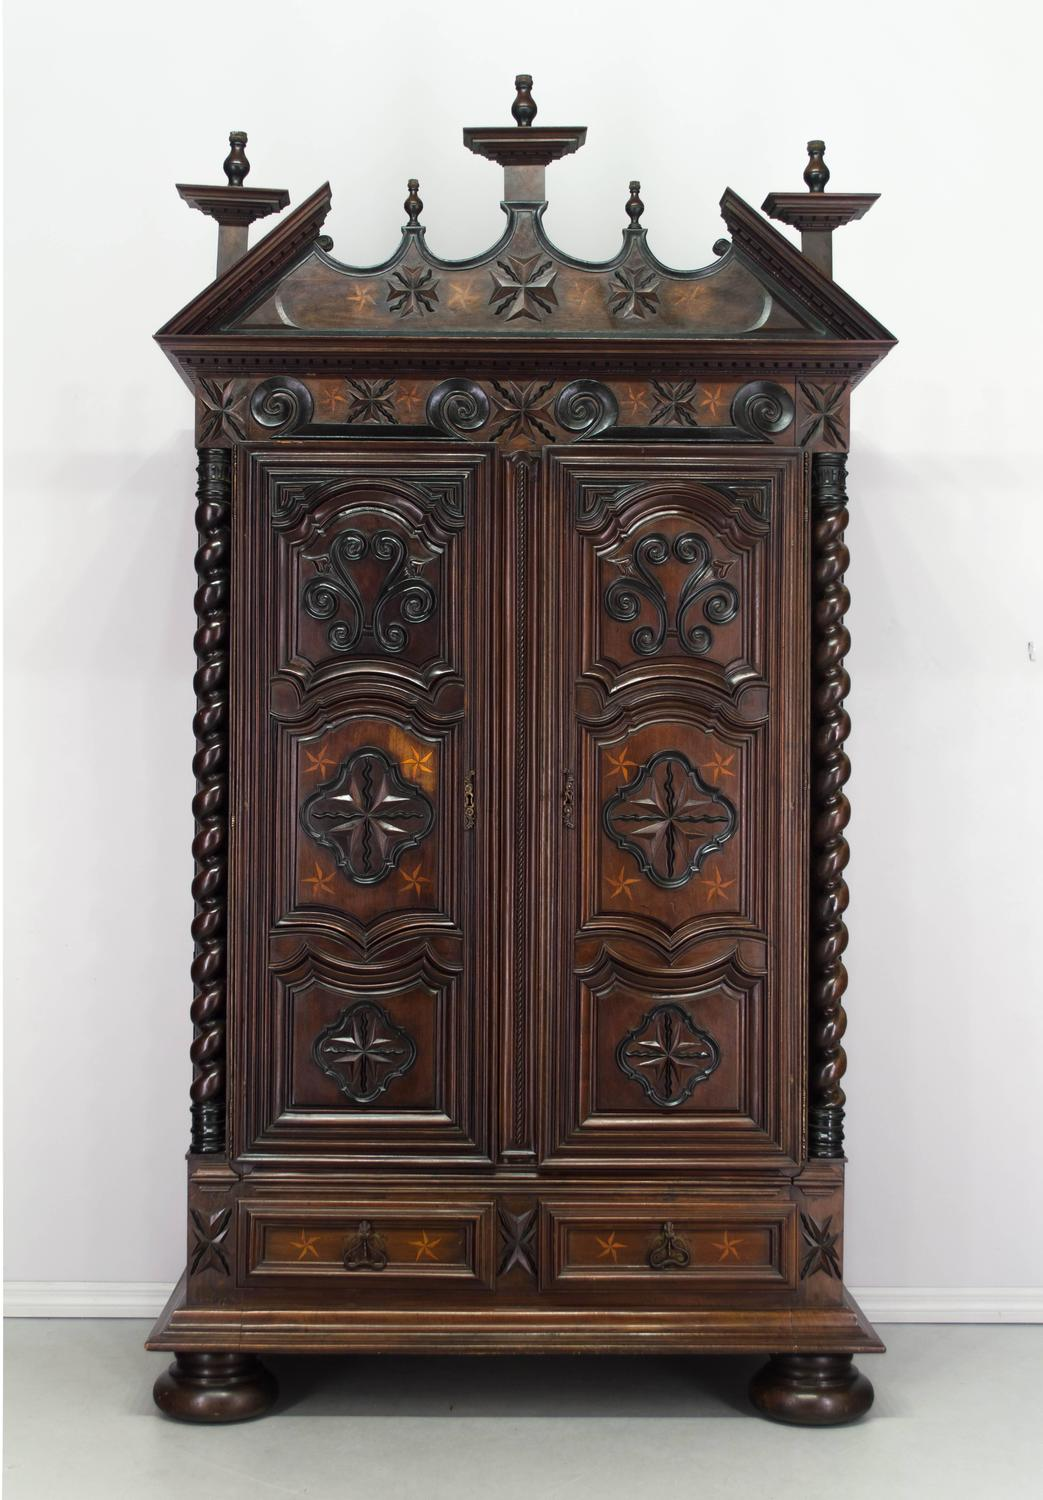 18th century louis xiii style armoire for sale at 1stdibs. Black Bedroom Furniture Sets. Home Design Ideas